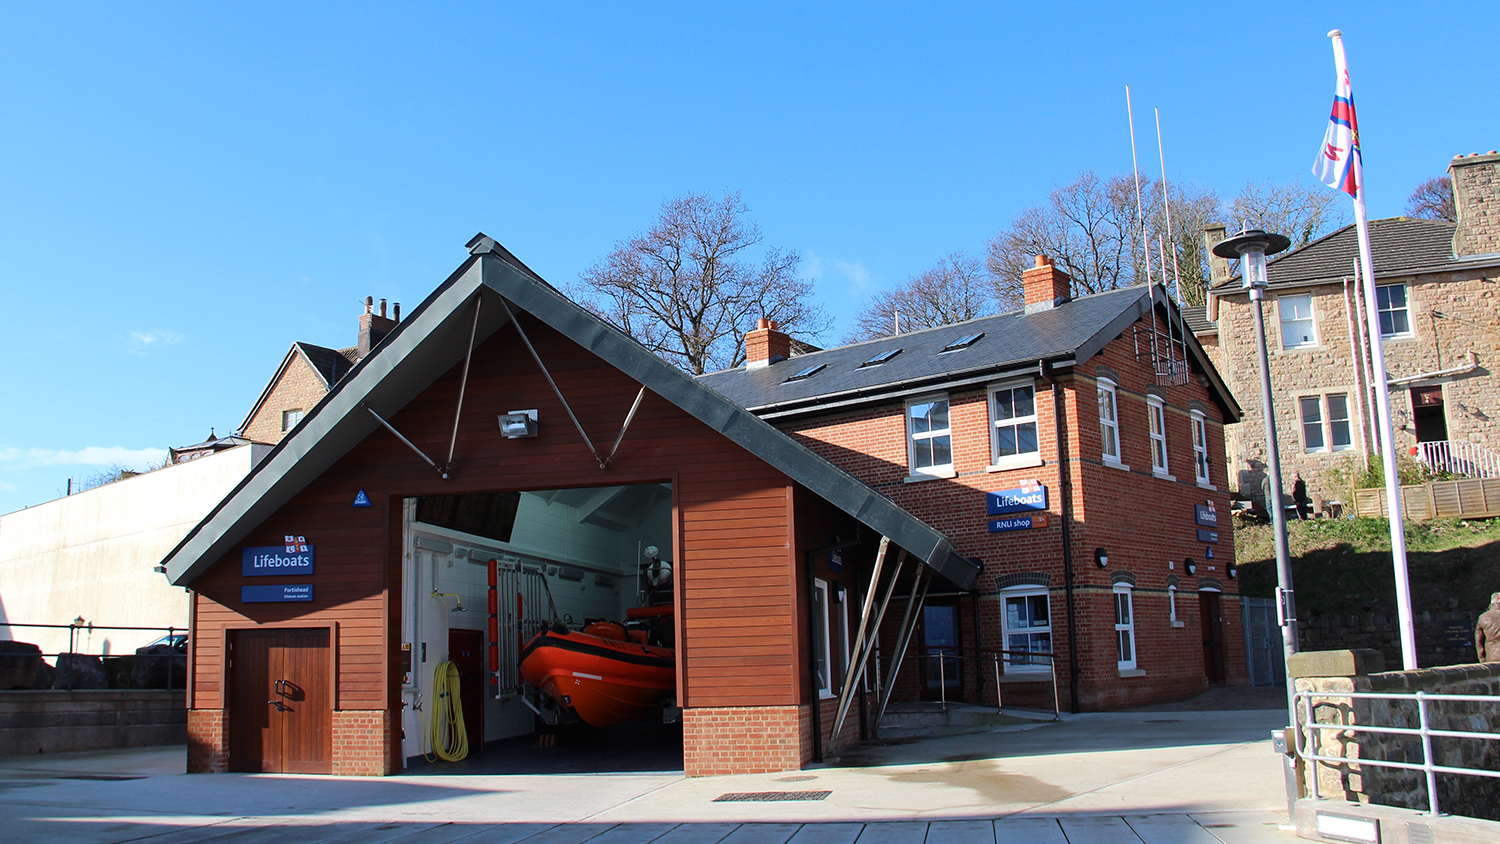 RNLI Portishead Lifeboat Station